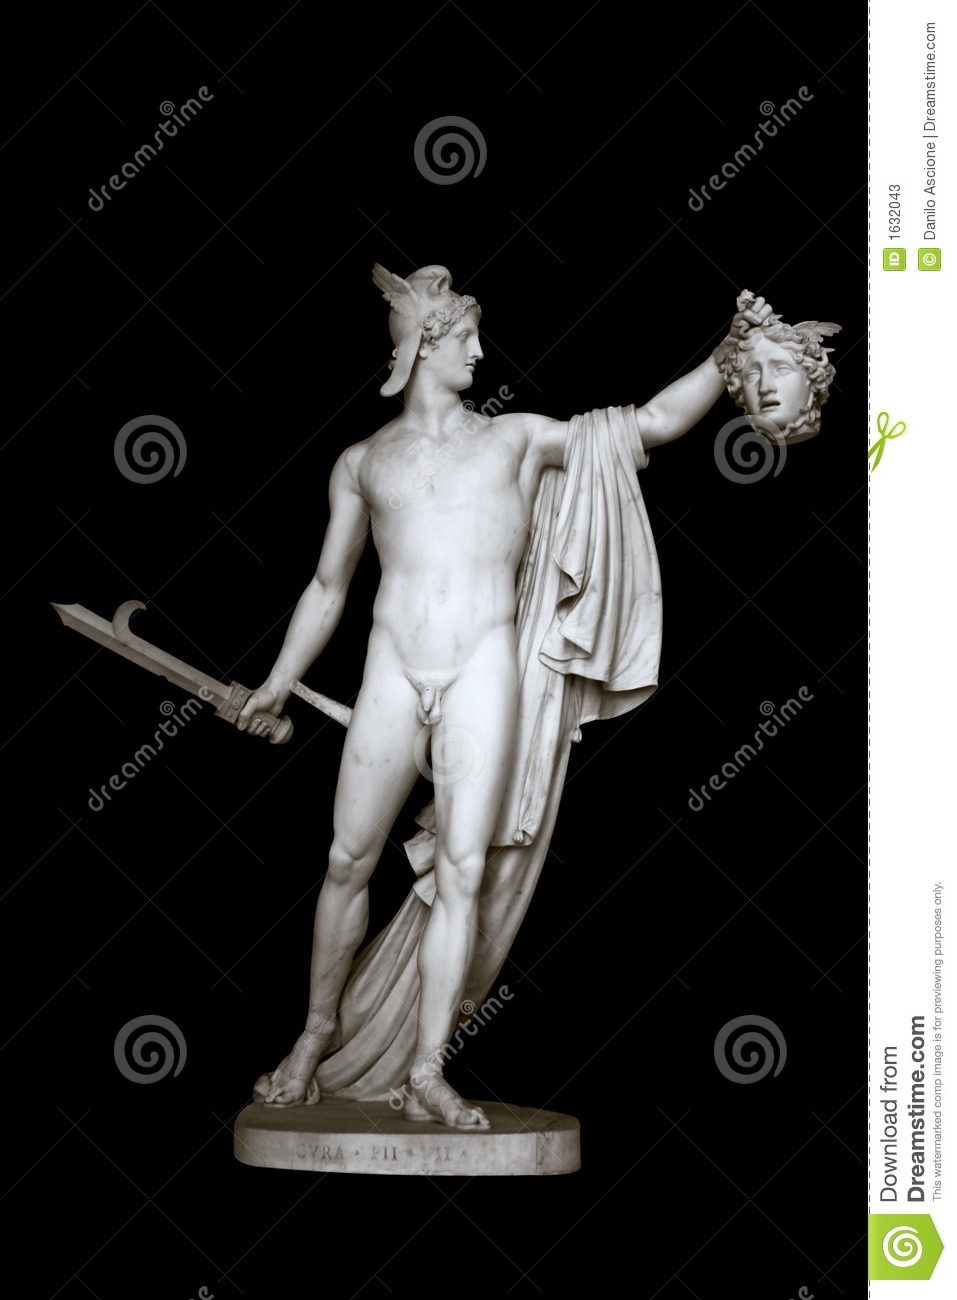 Statue of Perseus and Medusa